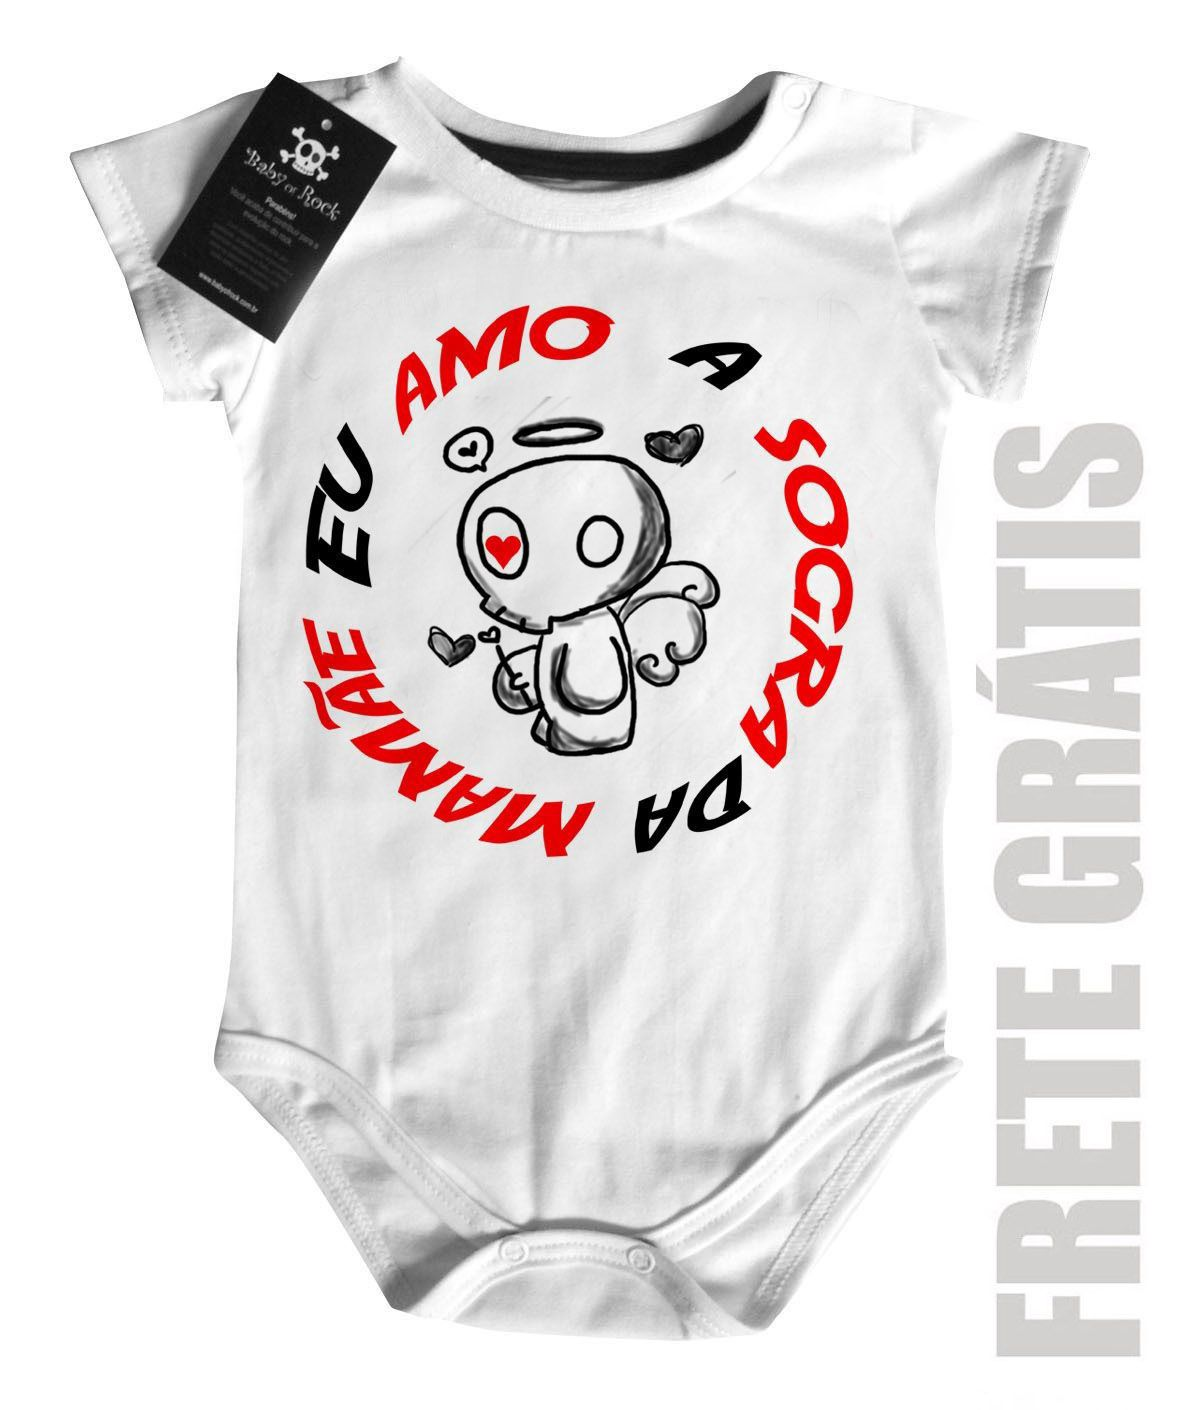 Body Baby Divertido - Amo a sogra da Mamãe- White  - Baby Monster S/A